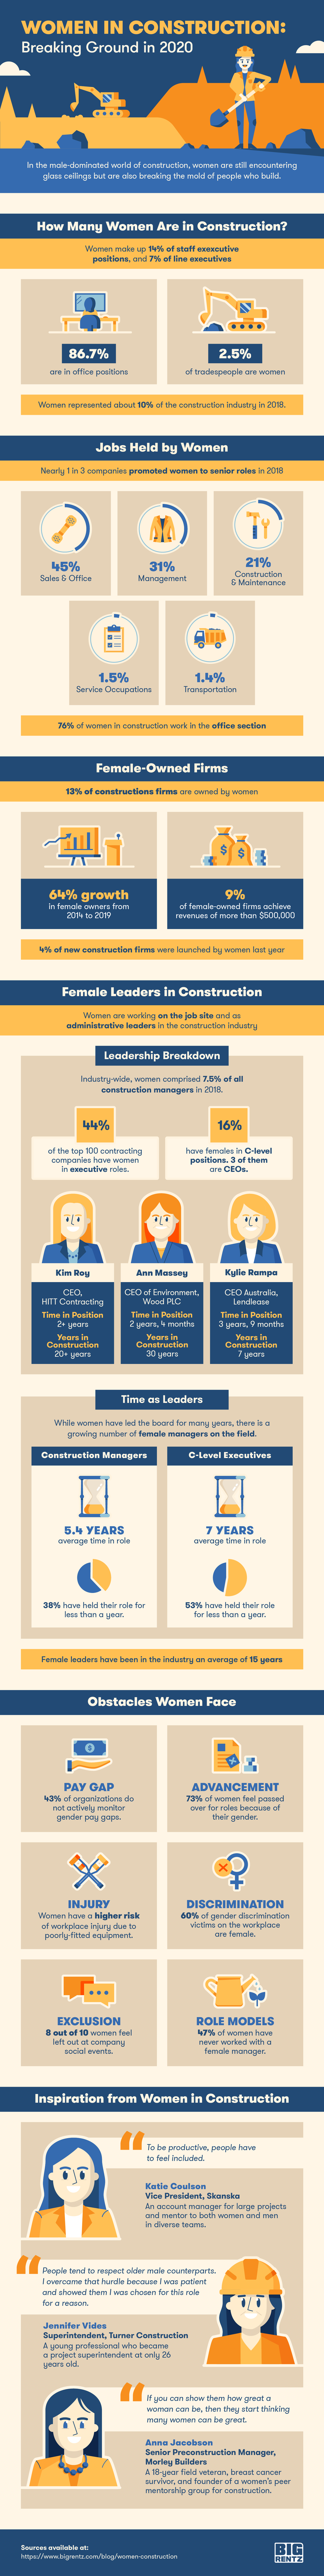 women in construction 2020 infographic